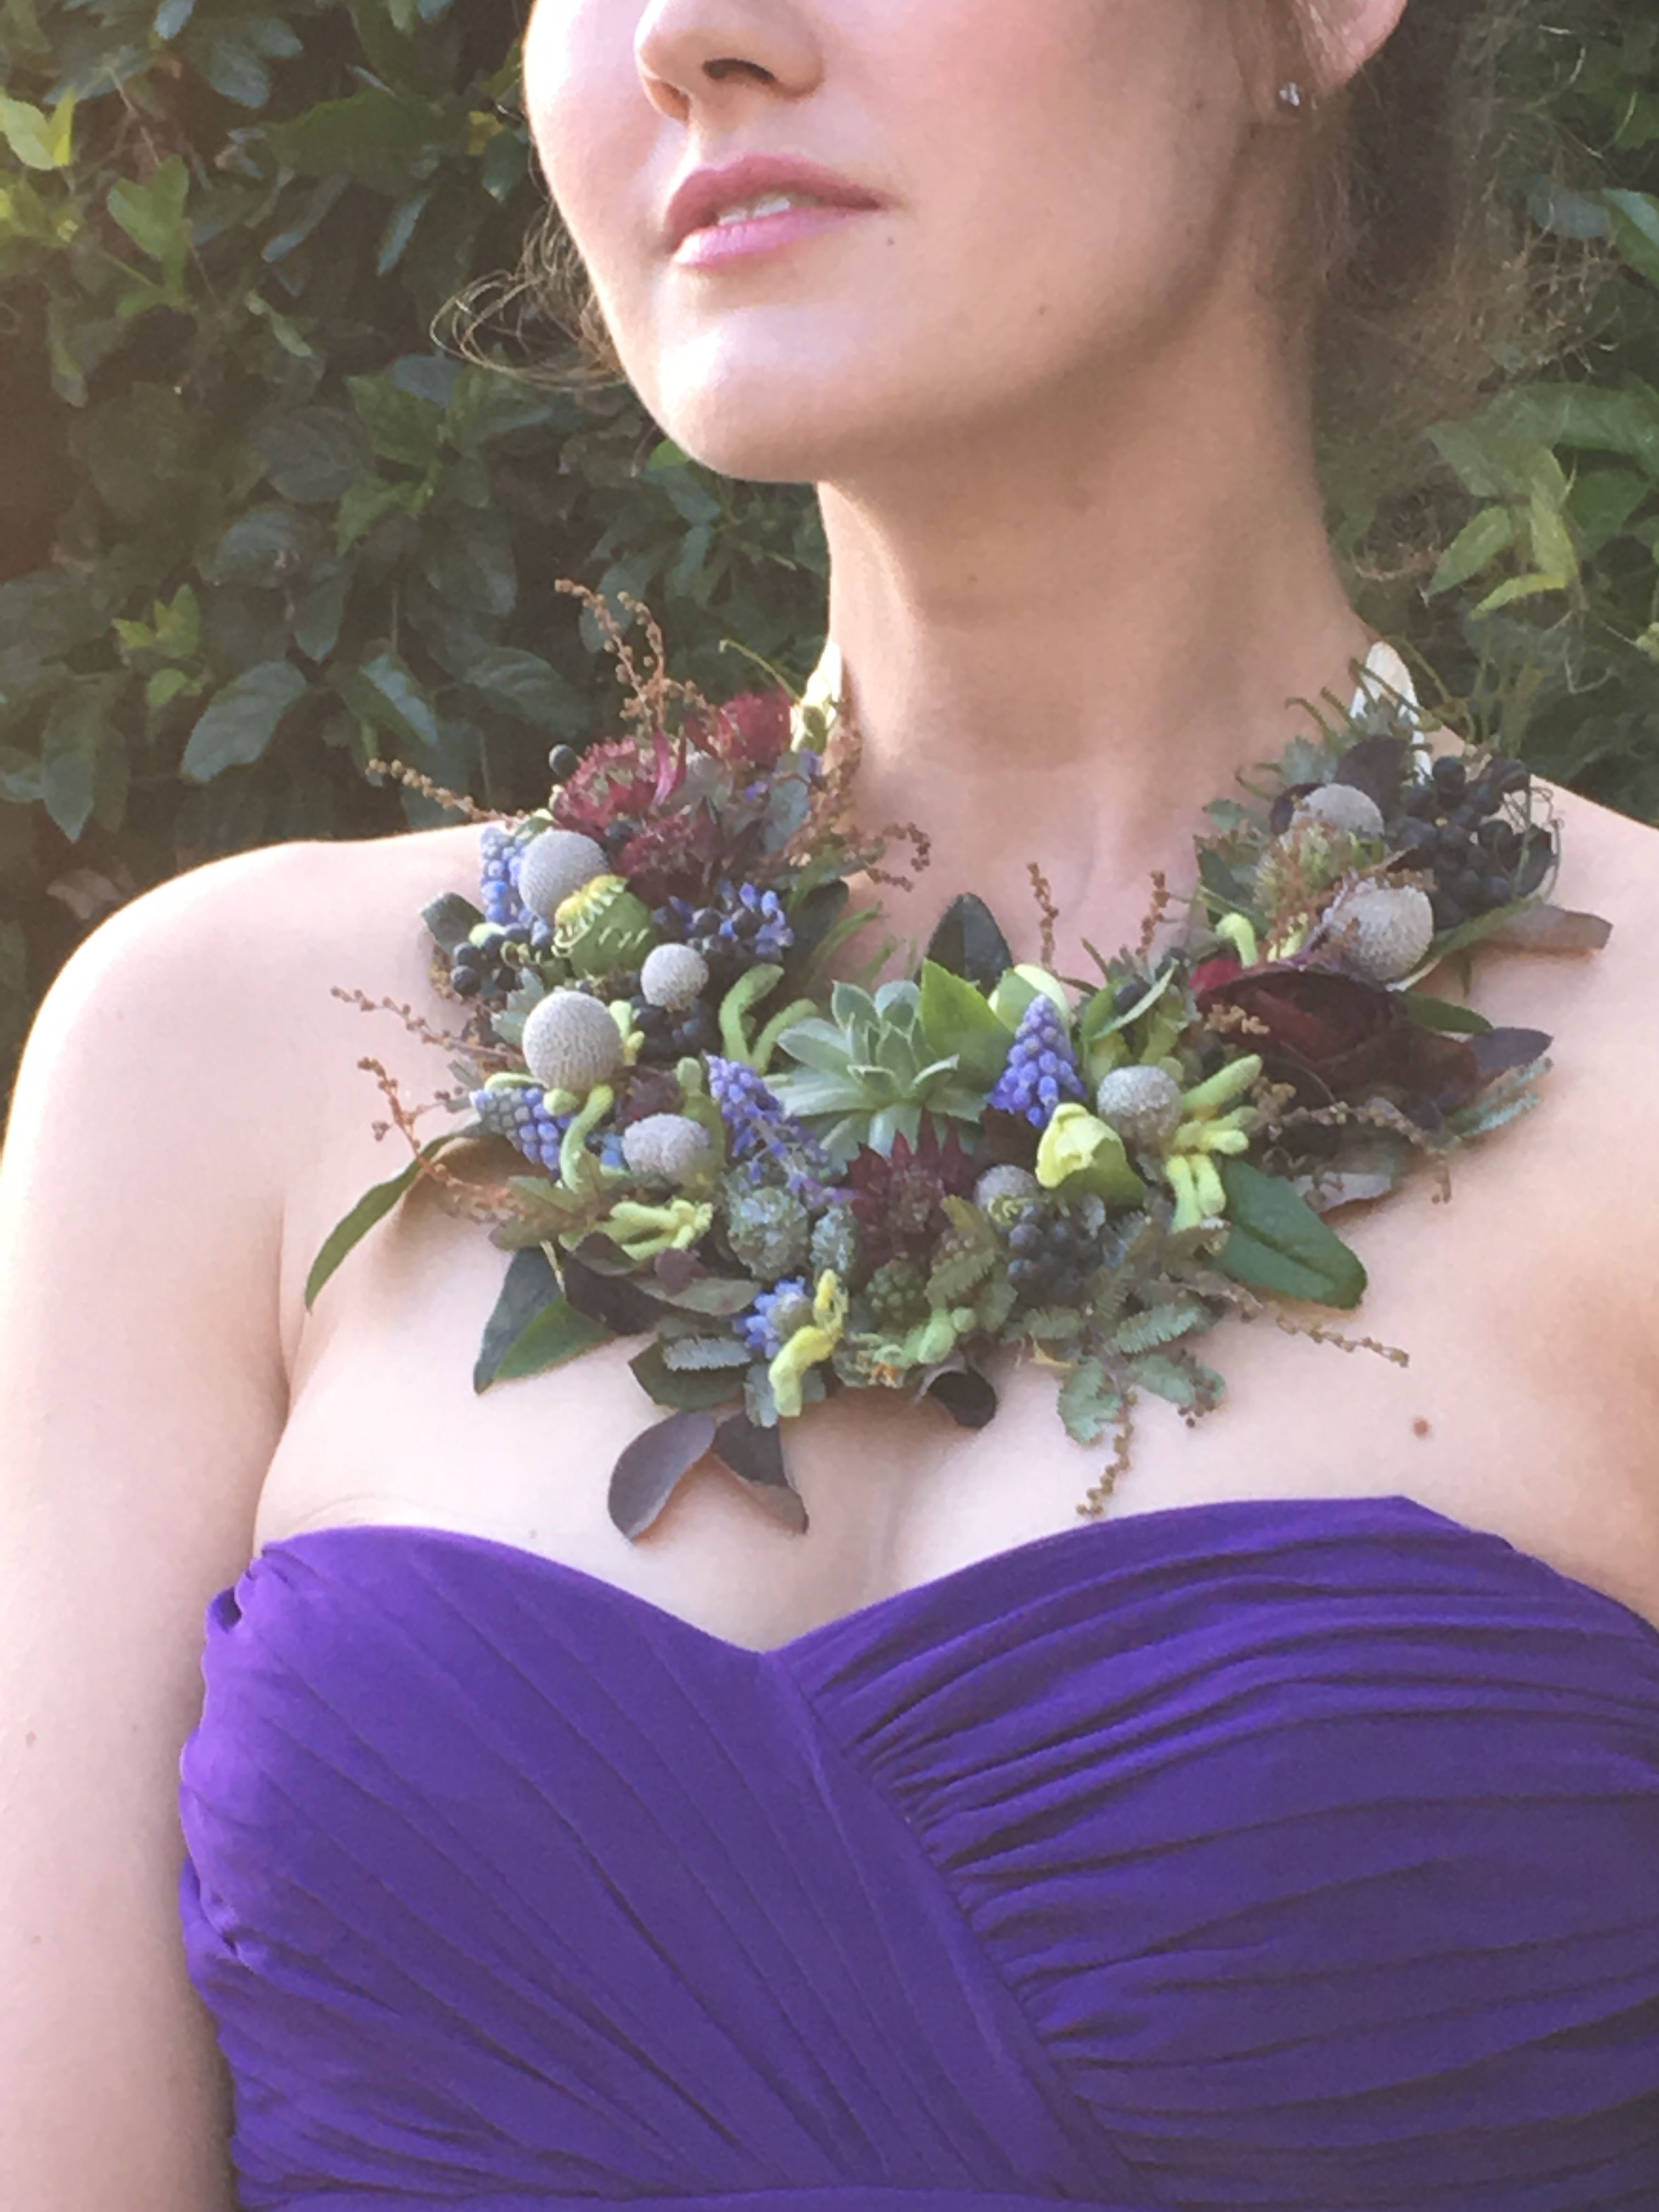 Passion Flowers Design Www Passionflowersdesign Com Wearable Floral Necklace With Muscari Brunia Pieris Ka Floral Hair Floral Accessories Floral Jewellery